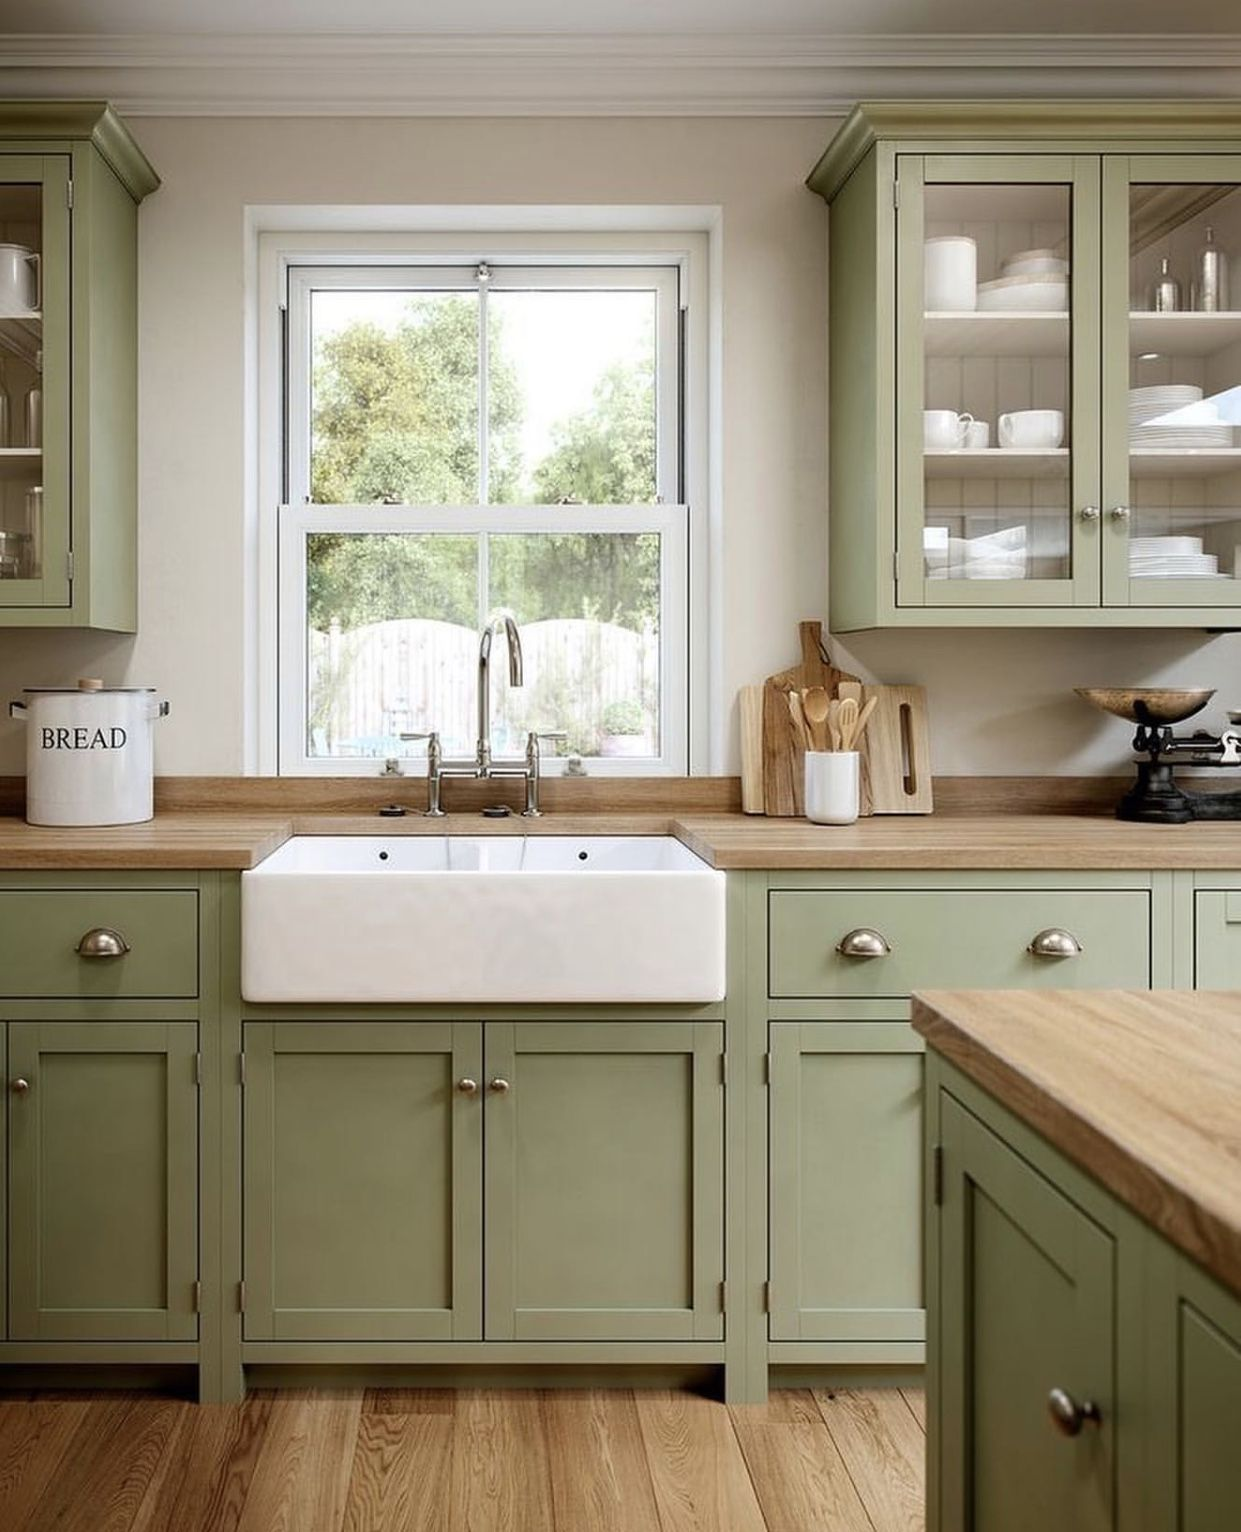 Pin By Katy Brammer On Decoracao Cozinha In 2020 Green Kitchen Cabinets Kitchen Cabinet Colors Beautiful Kitchen Cabinets